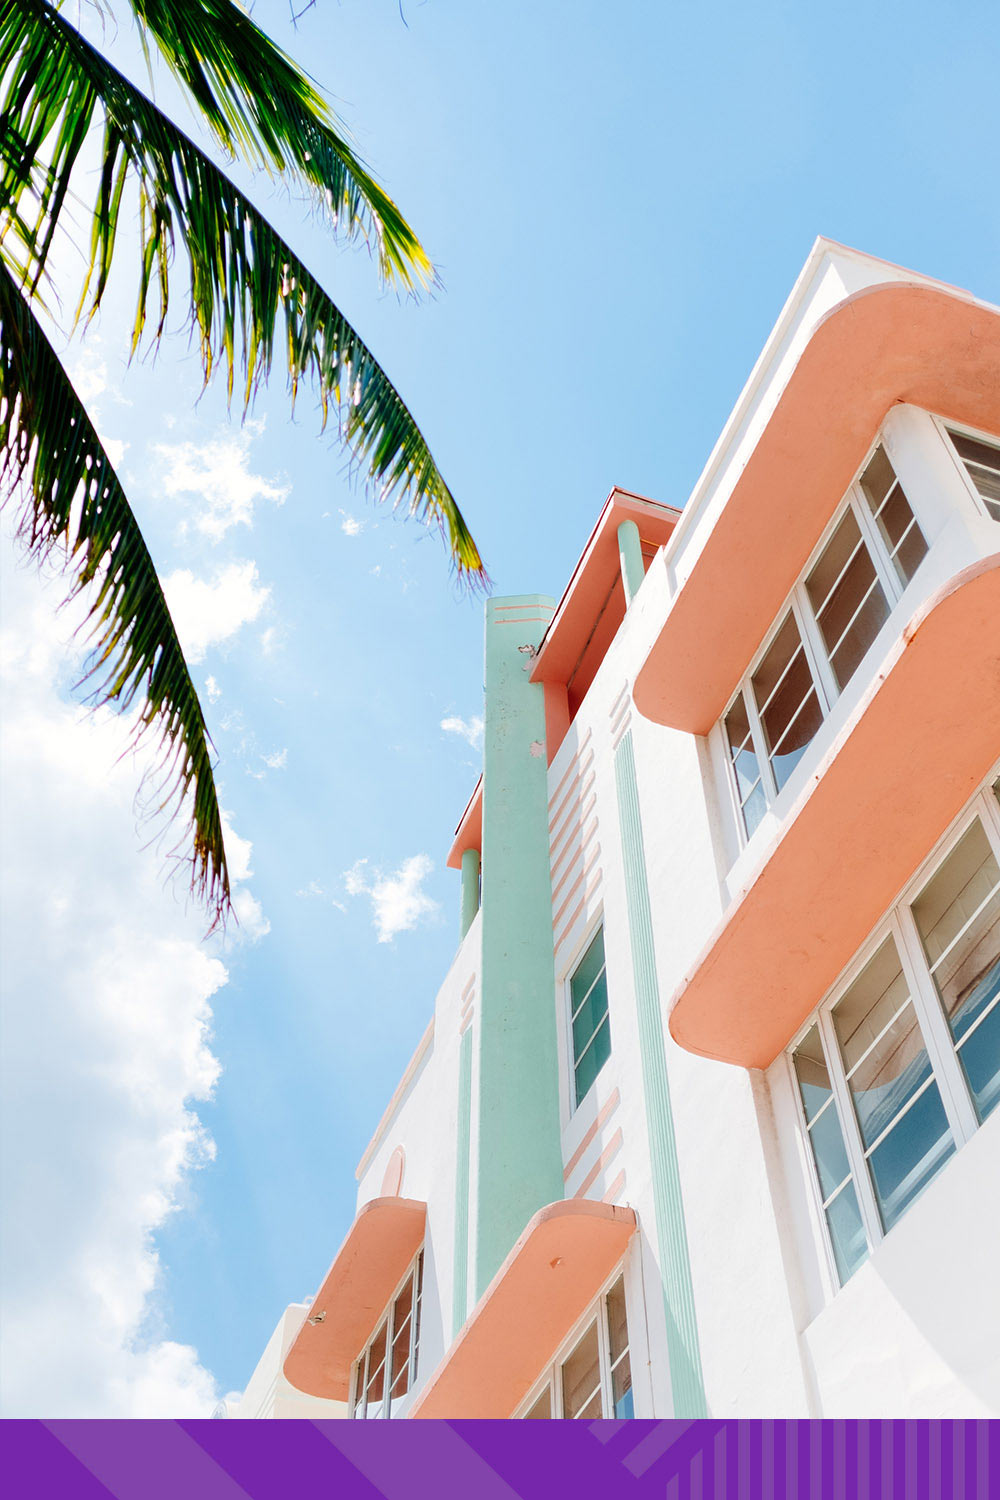 A shot of a building in Miami with an illustrated, color-block sky.